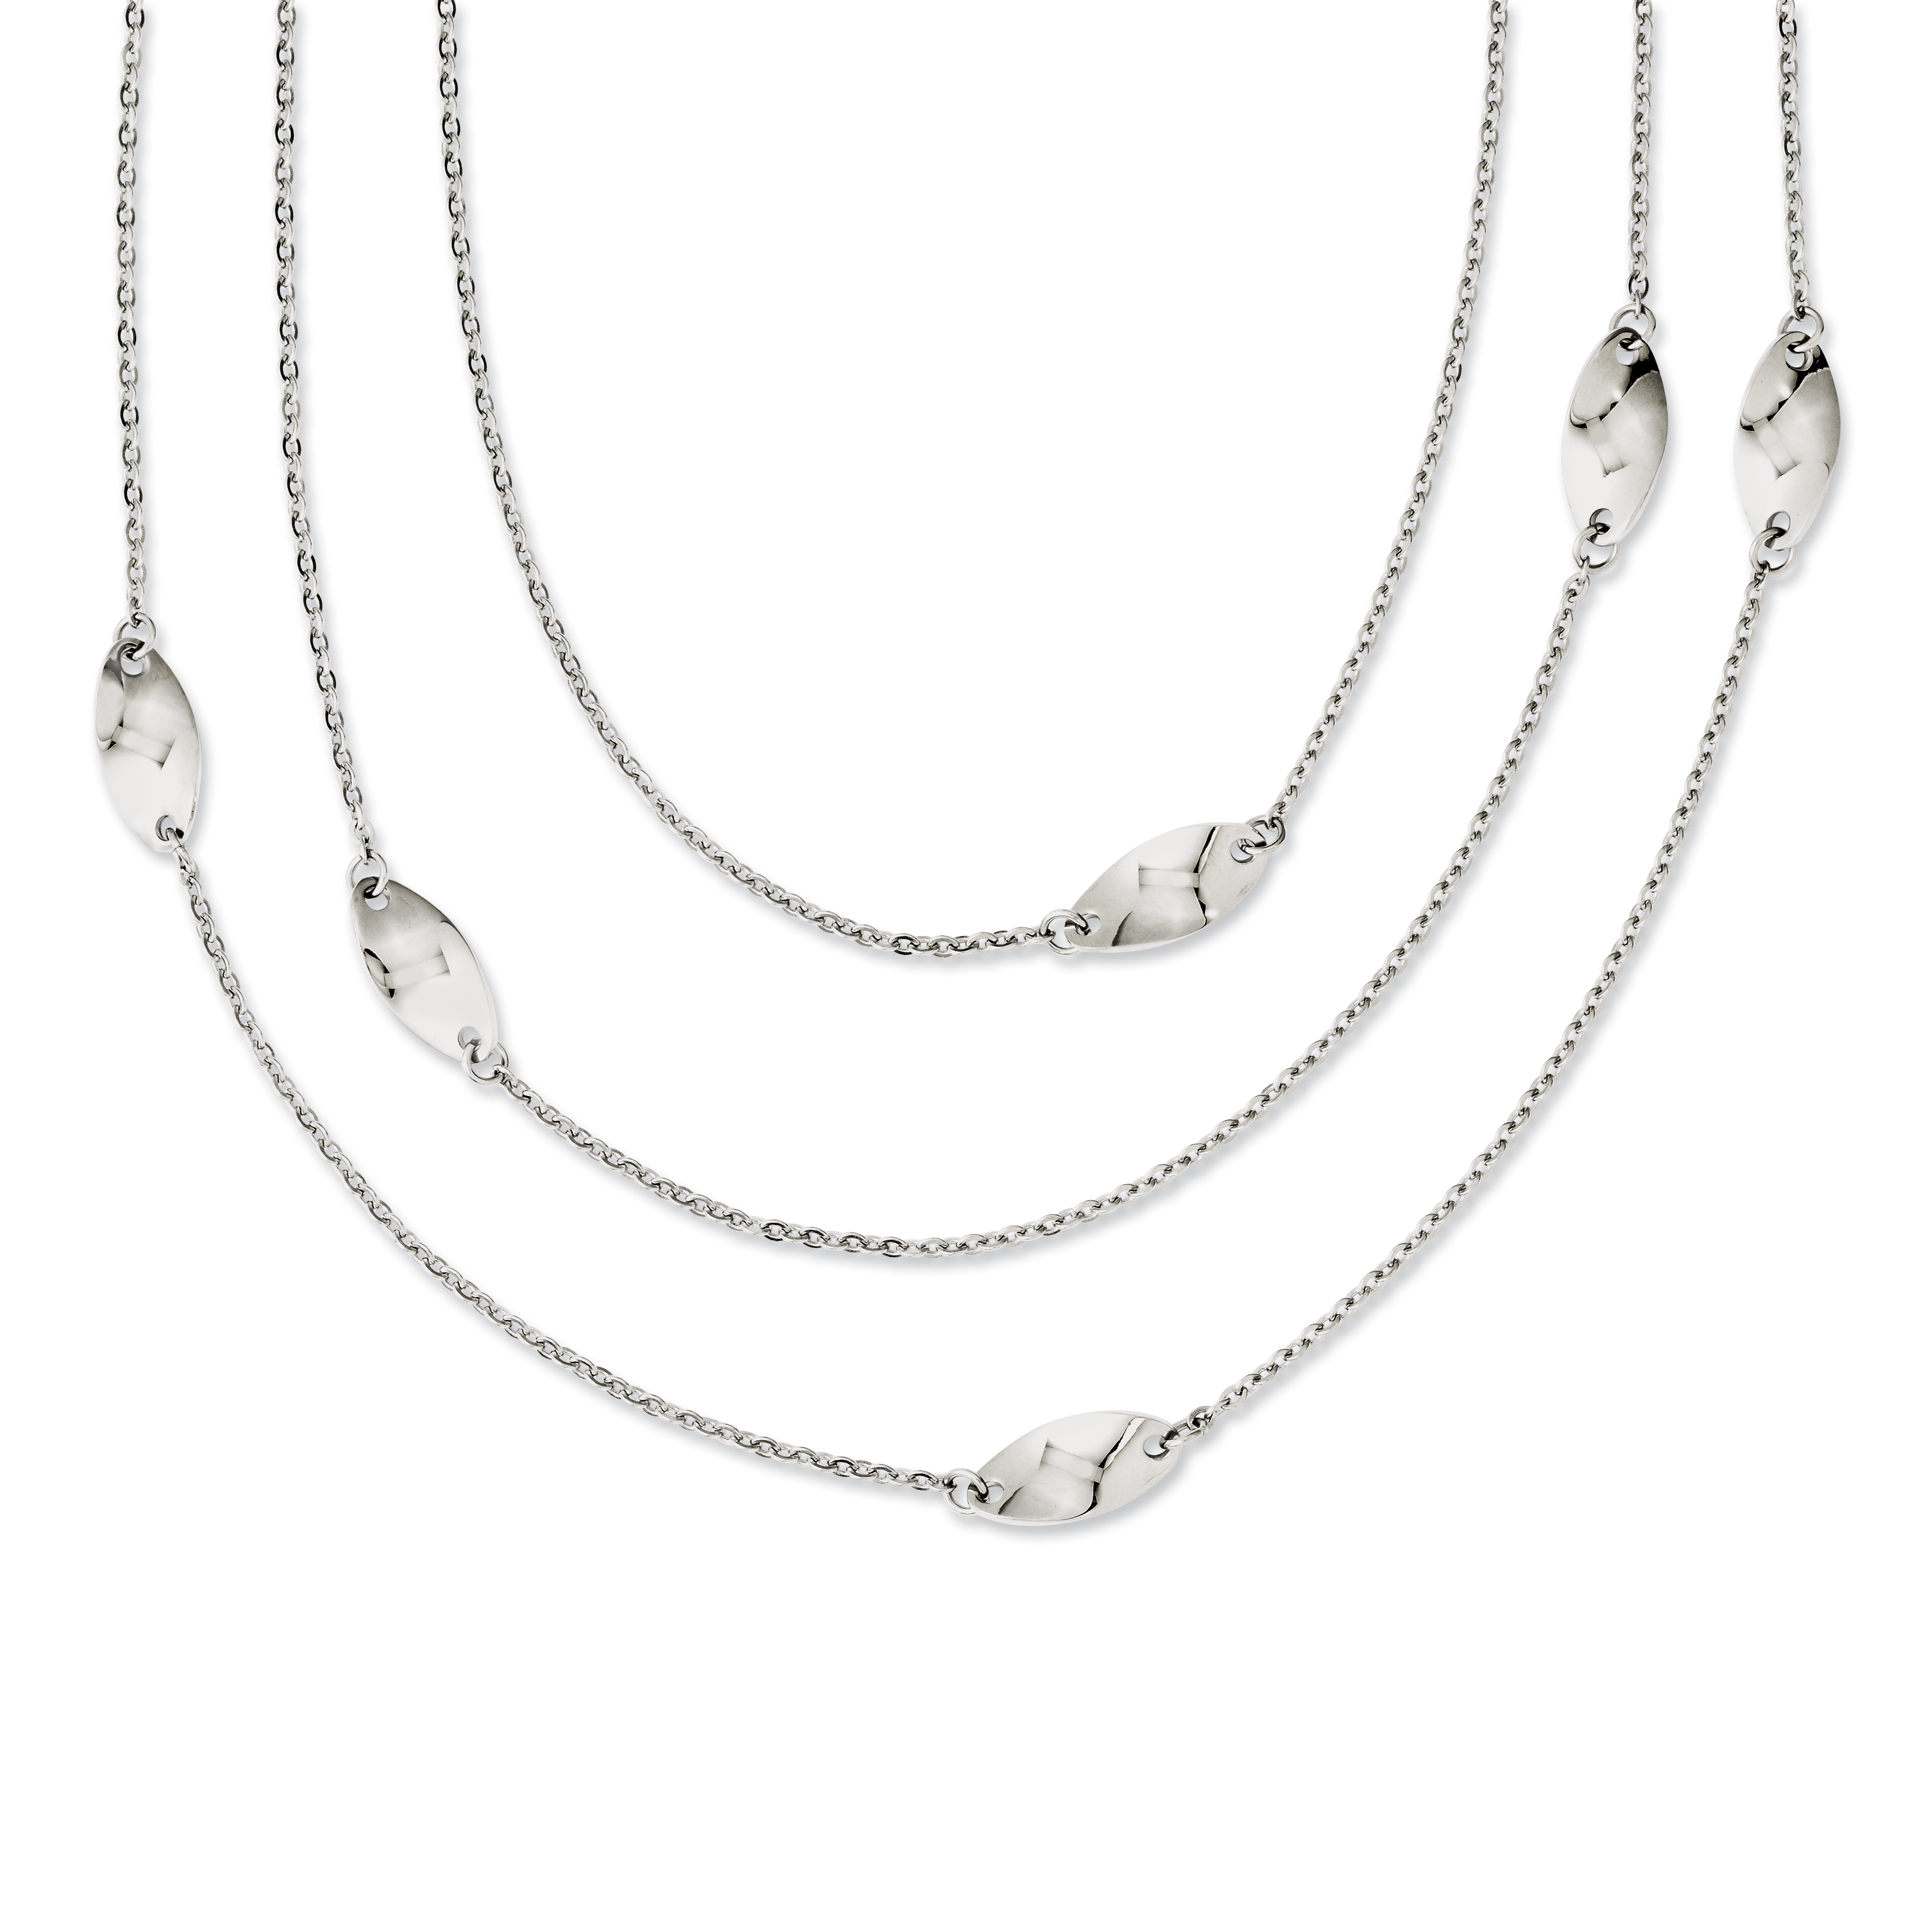 Stainless Steel Multi Chain with Polished Swirl Layered Slip-on Necklace SRN1164